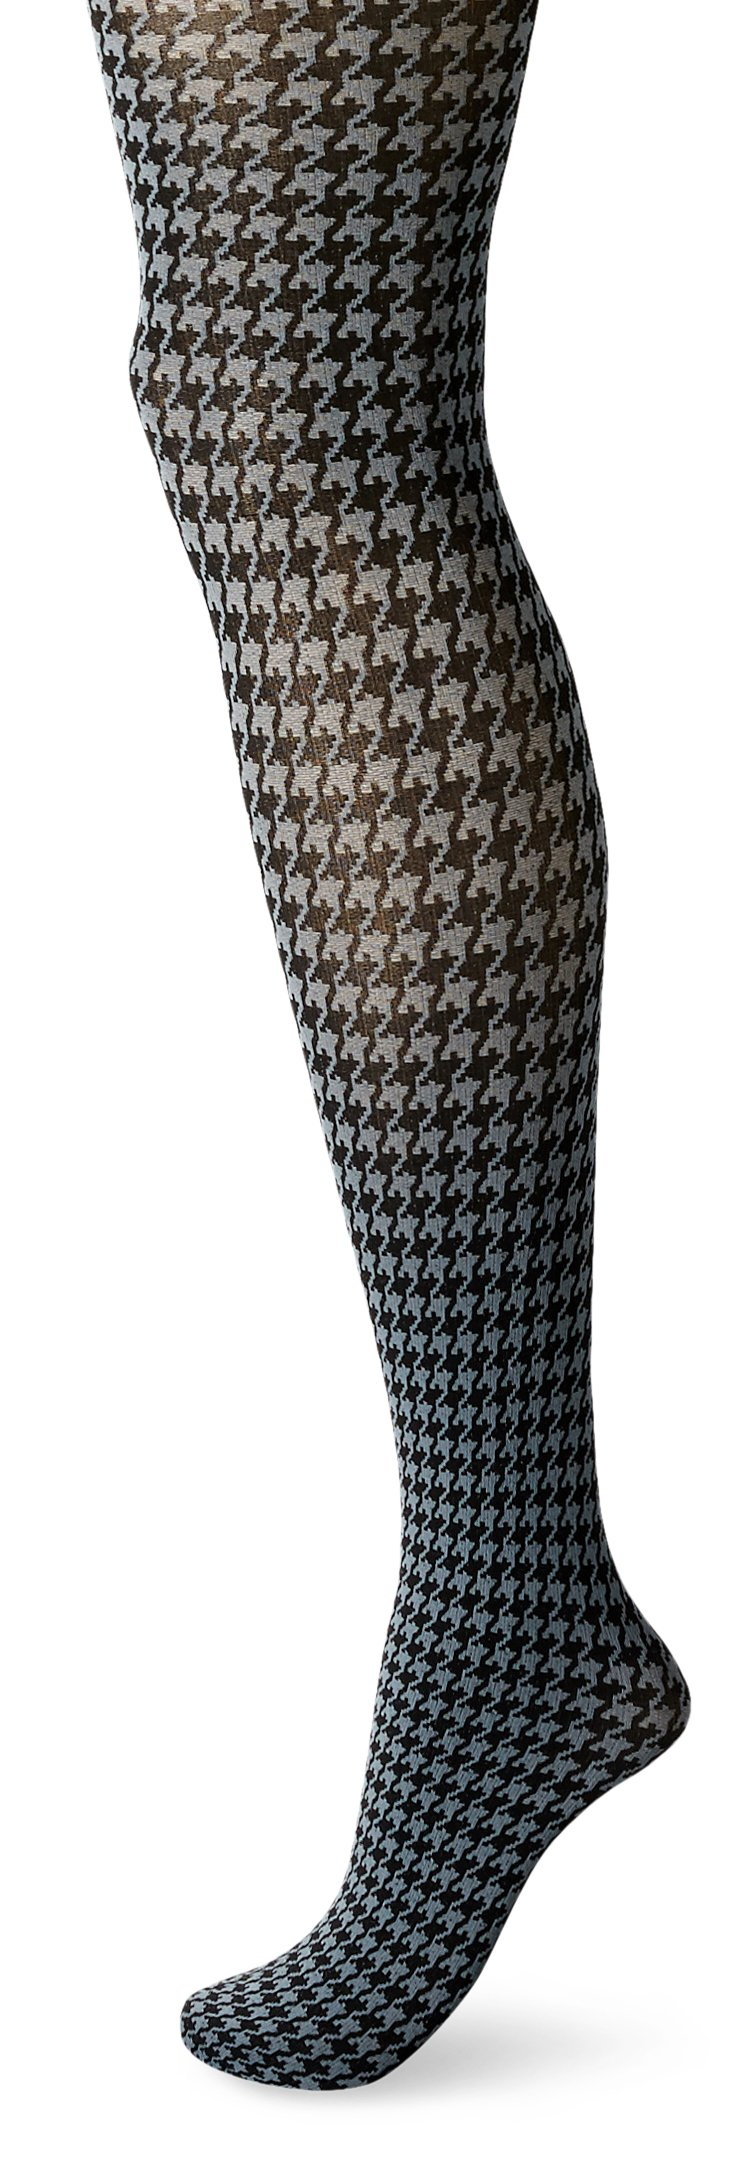 Hue Women's Houndstooth Tights with Control Top, Thunder, Medium/Large